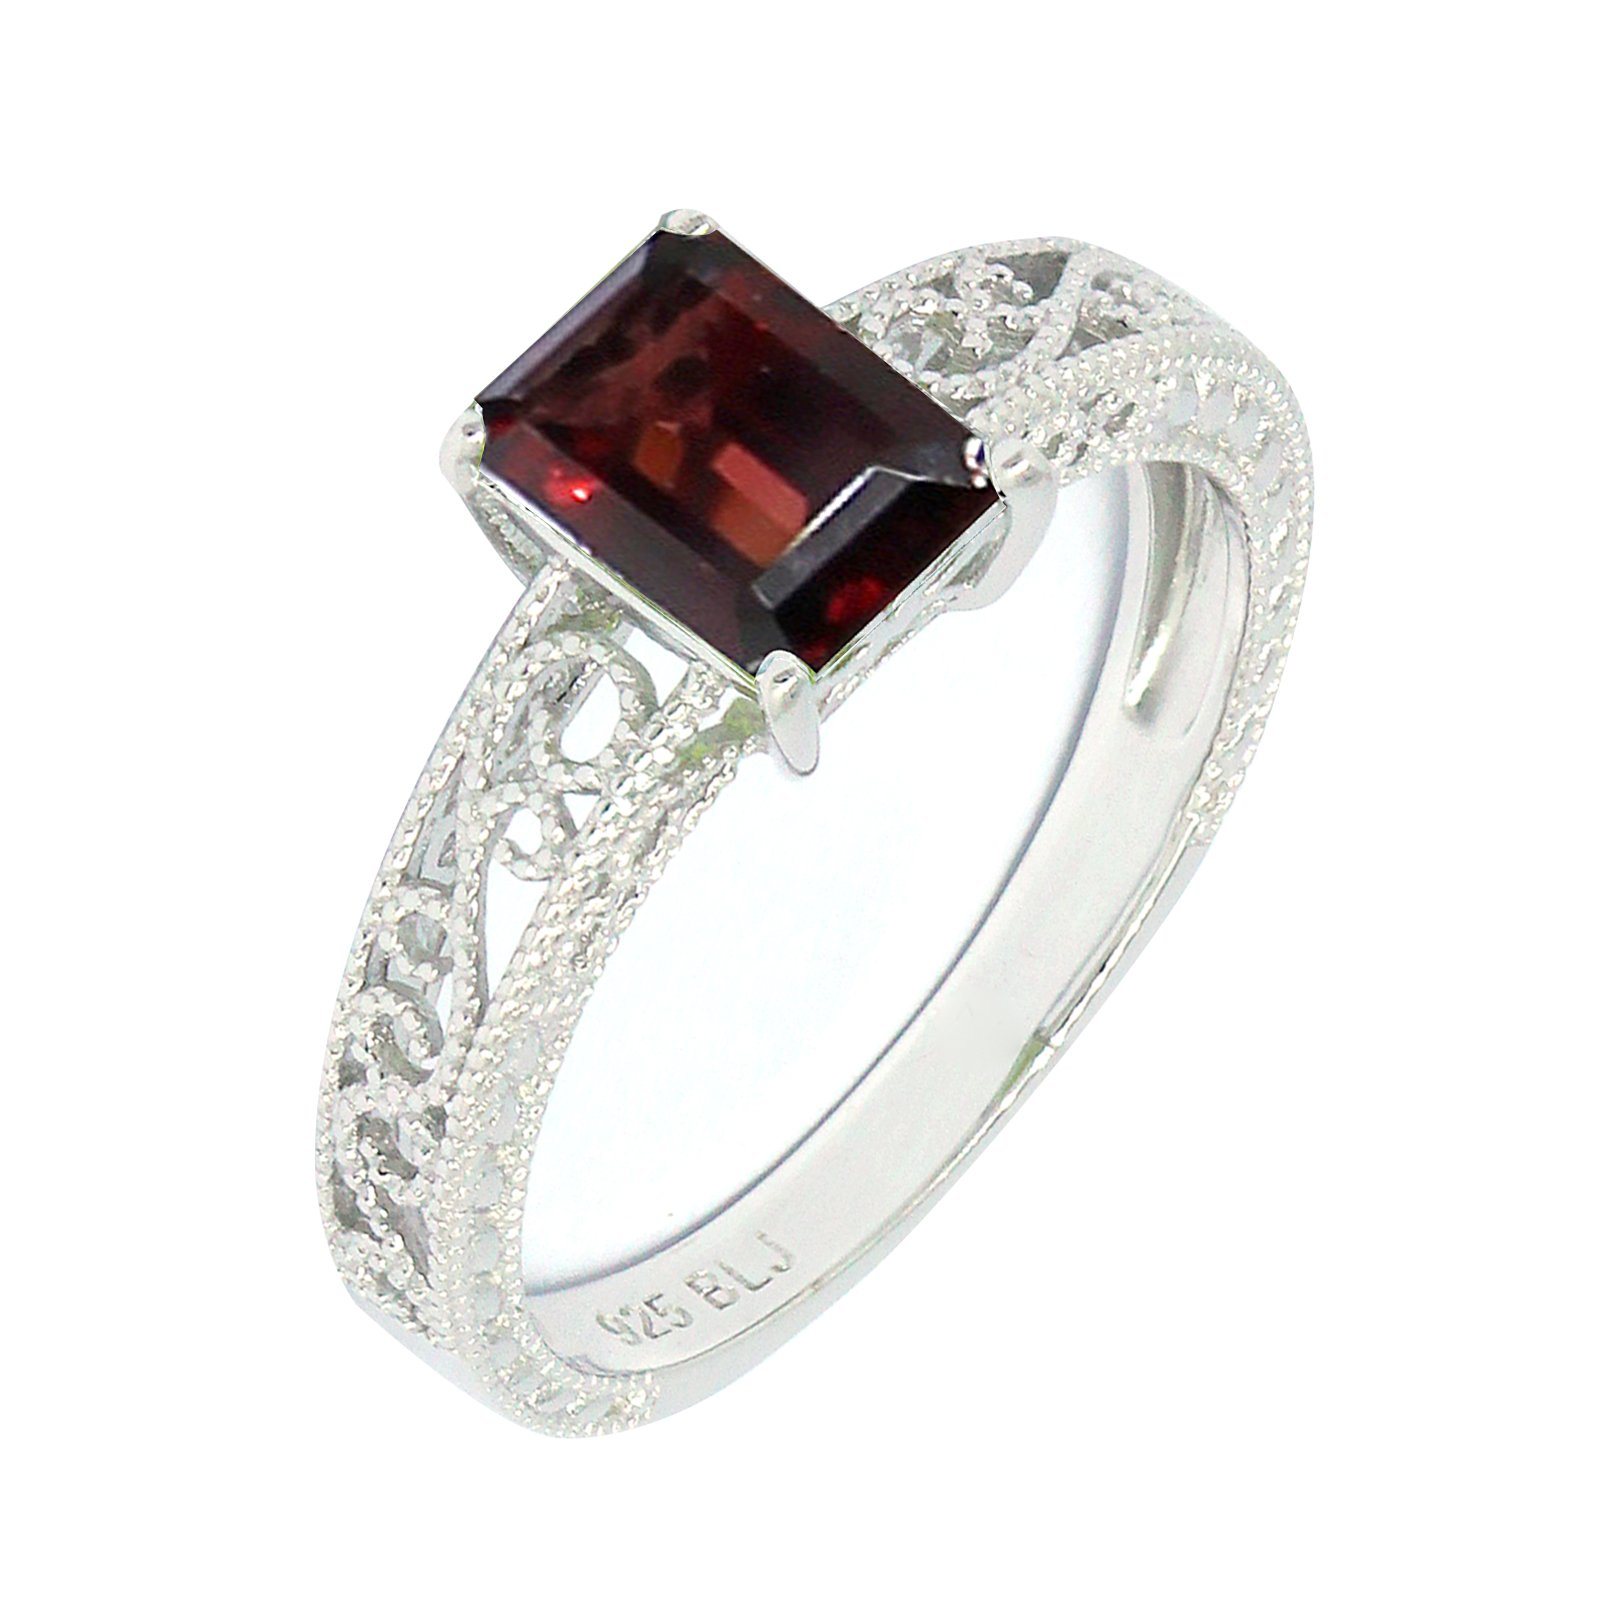 Filigree Sterling Silver Emerald Cut Natural Mozambique Garnet Statement Ring (2.2 CT.T.W)